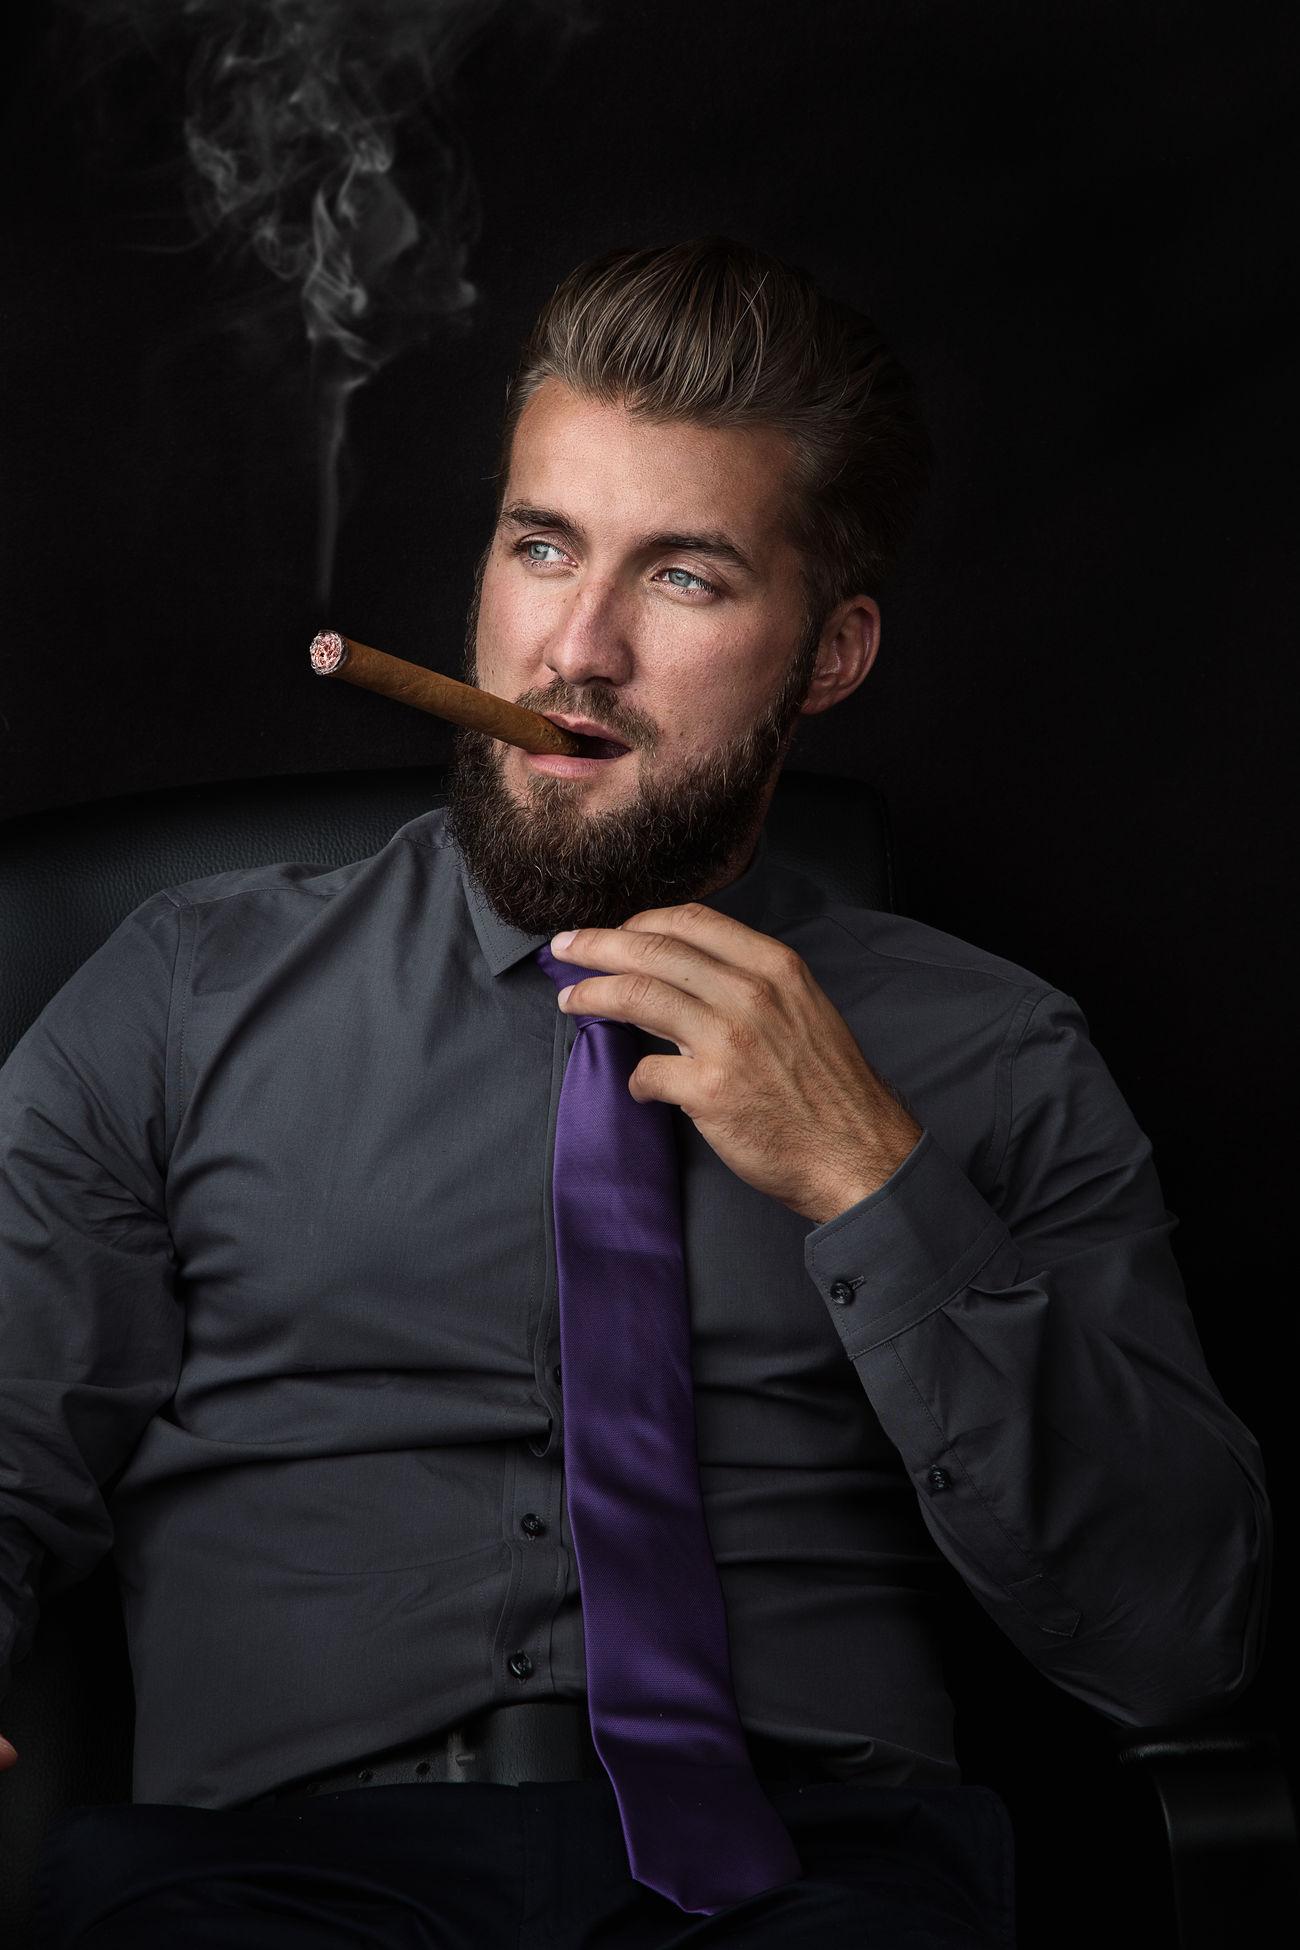 Portrait of a young successful businessman smoking a cigar on black background Attractive Beard Black Background Boss Business Cigar Cigarette  Cloud Holding Indoors  Isolated Lifestyles Luxury Mafia  Man Model One People Person Portrait Rich Smoking Stylish Successful Young Adult